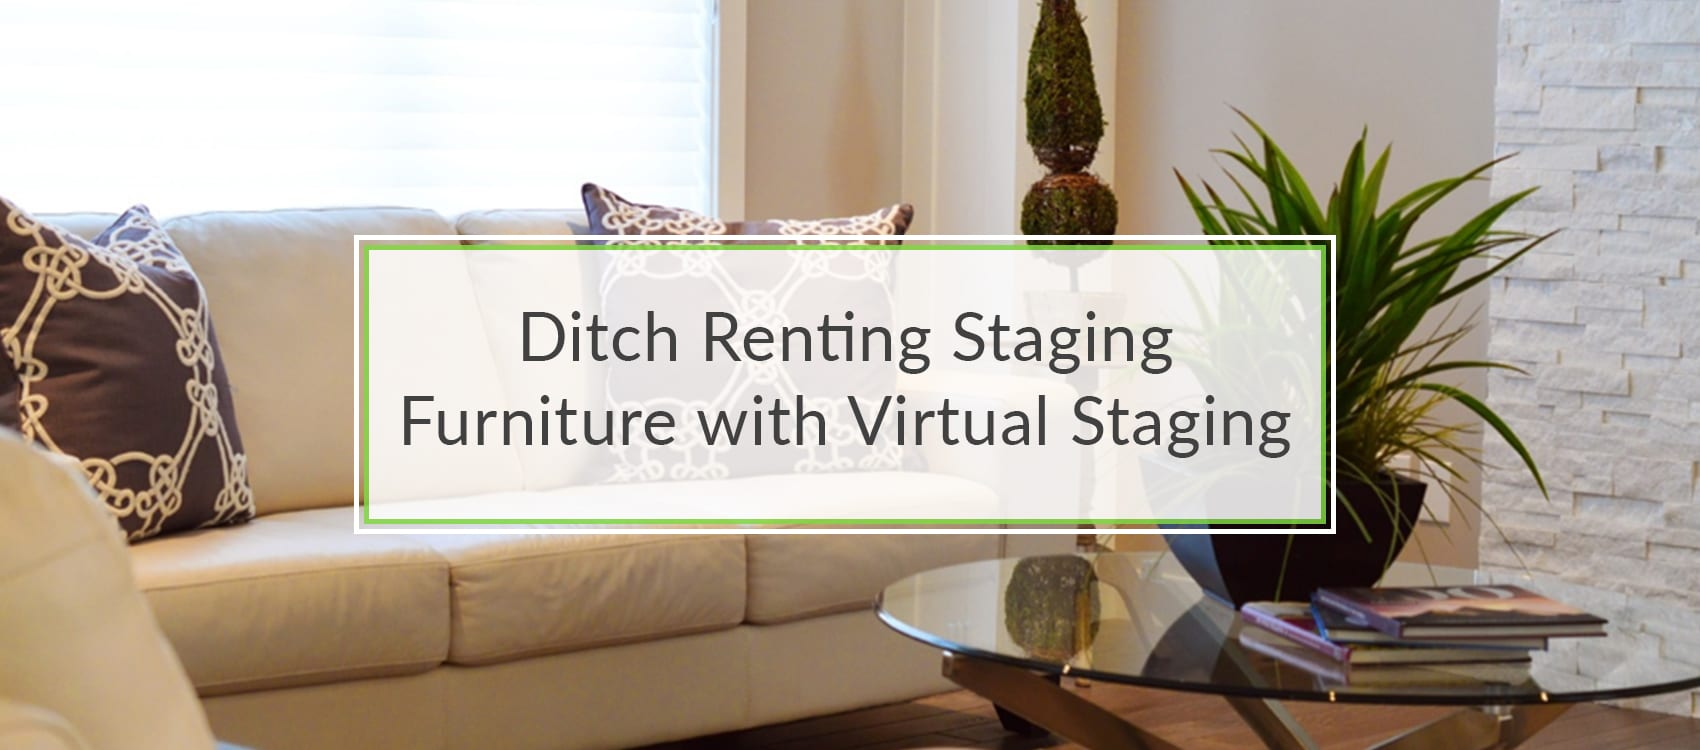 Ditch Renting